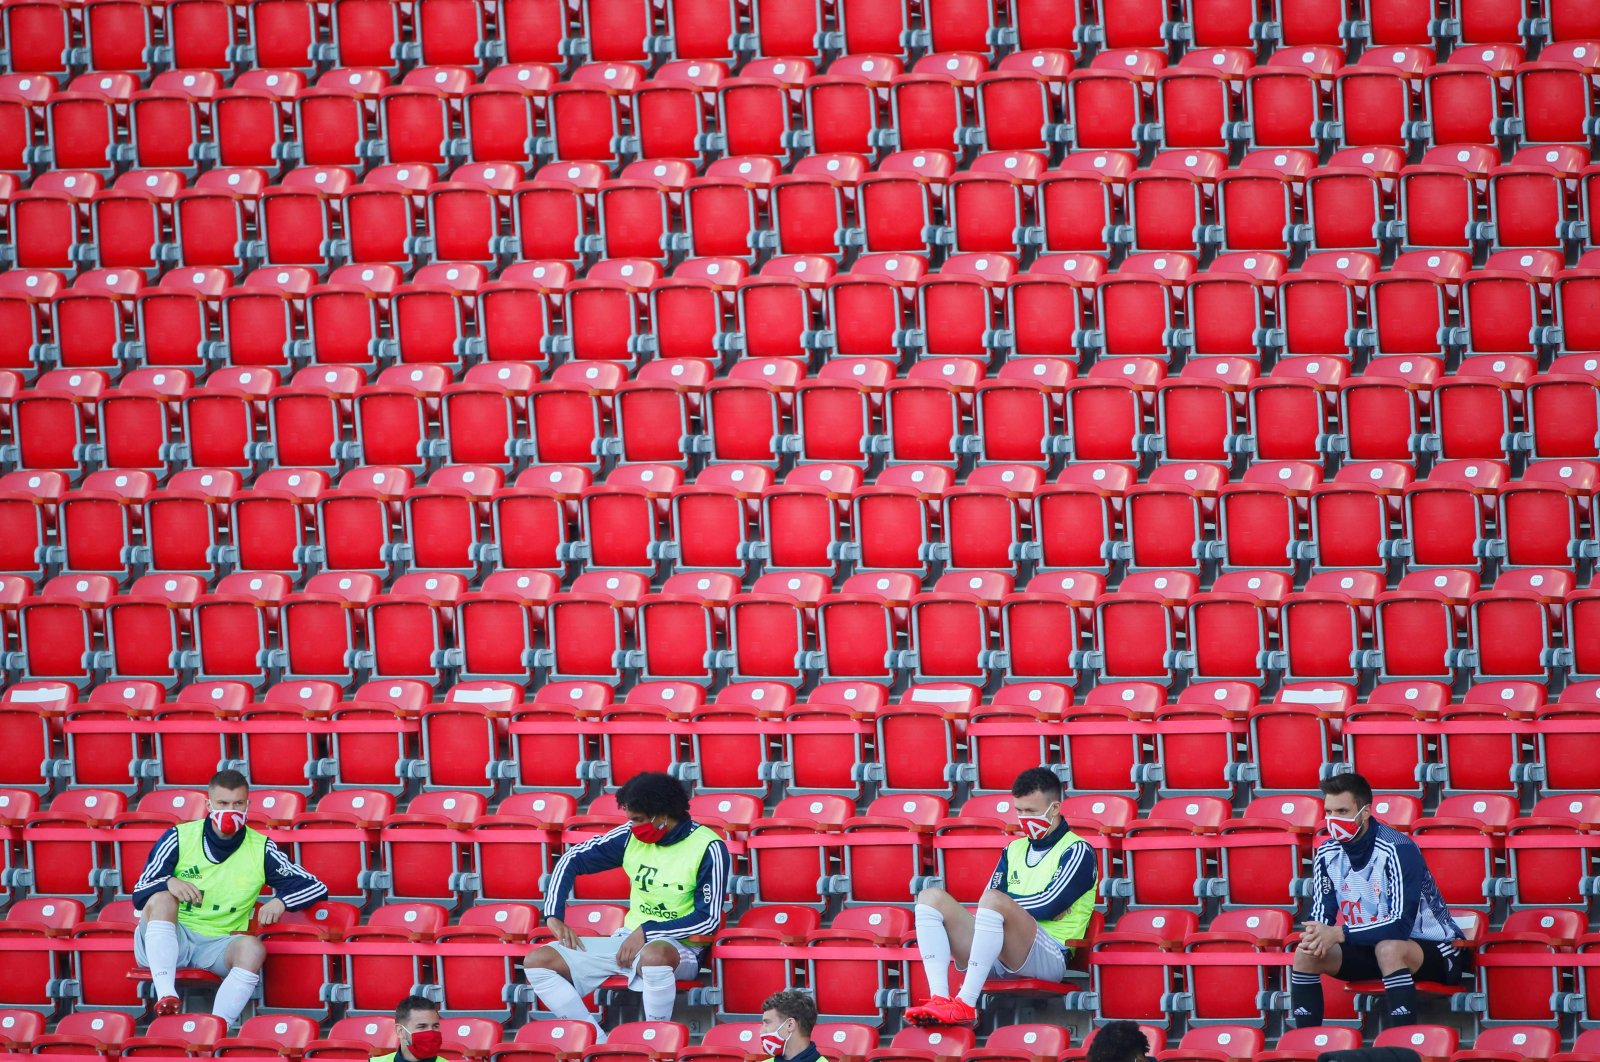 Bayern Munich substitutes wearing protective face masks maintain social distance in the stands during a Bundesliga football match against Union Berlin in Berlin, Germany, May 17, 2020. (AFP Photo)